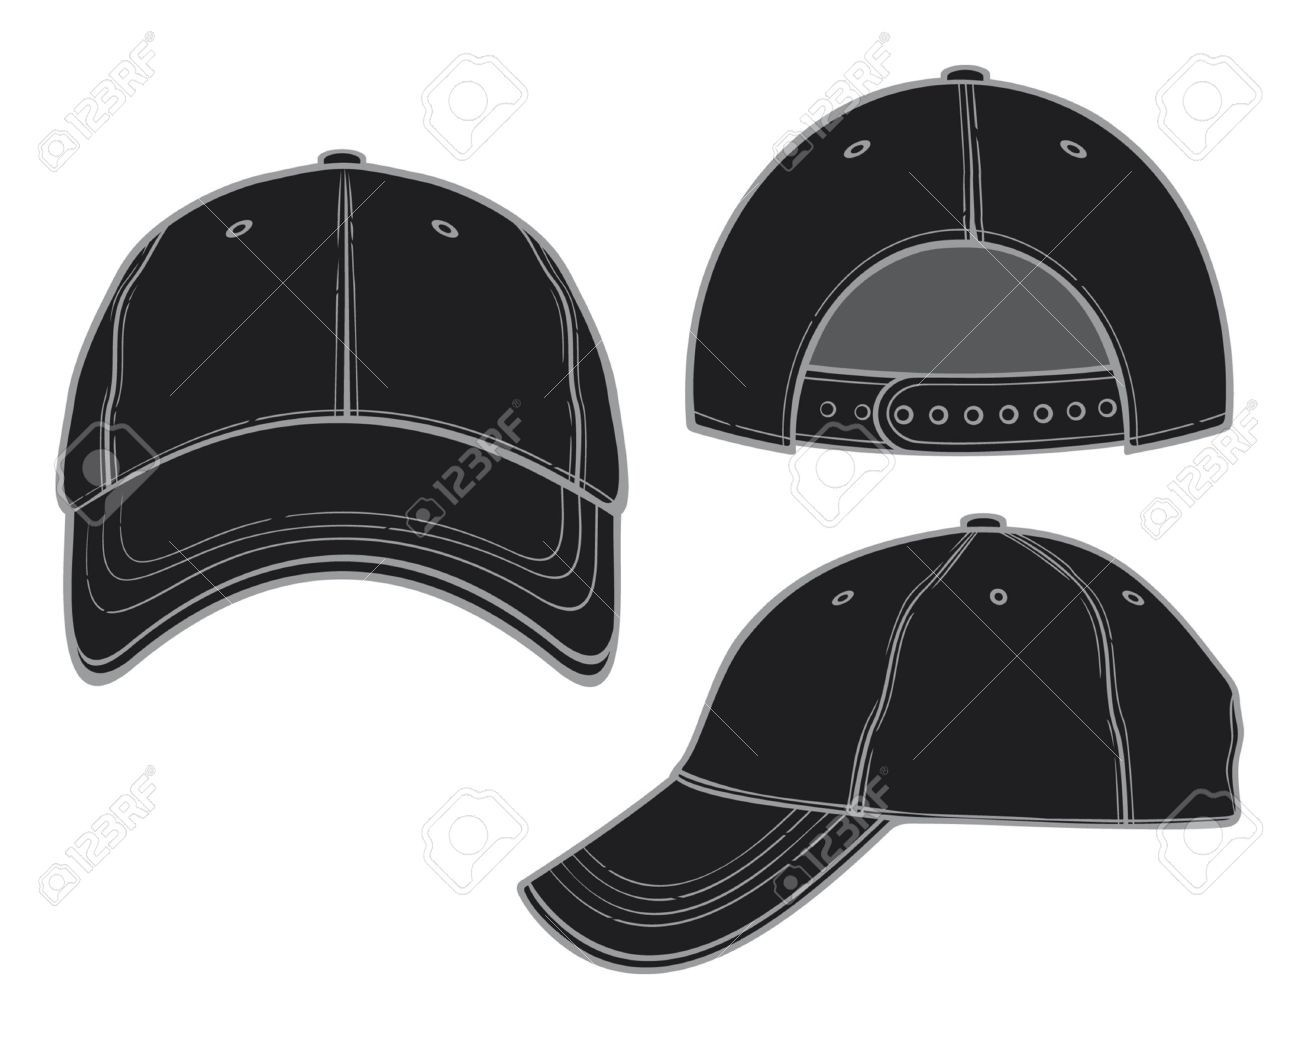 Backwards hat clipart clip transparent library Backwards baseball cap cap clipart backwards hat pencil and in color ... clip transparent library